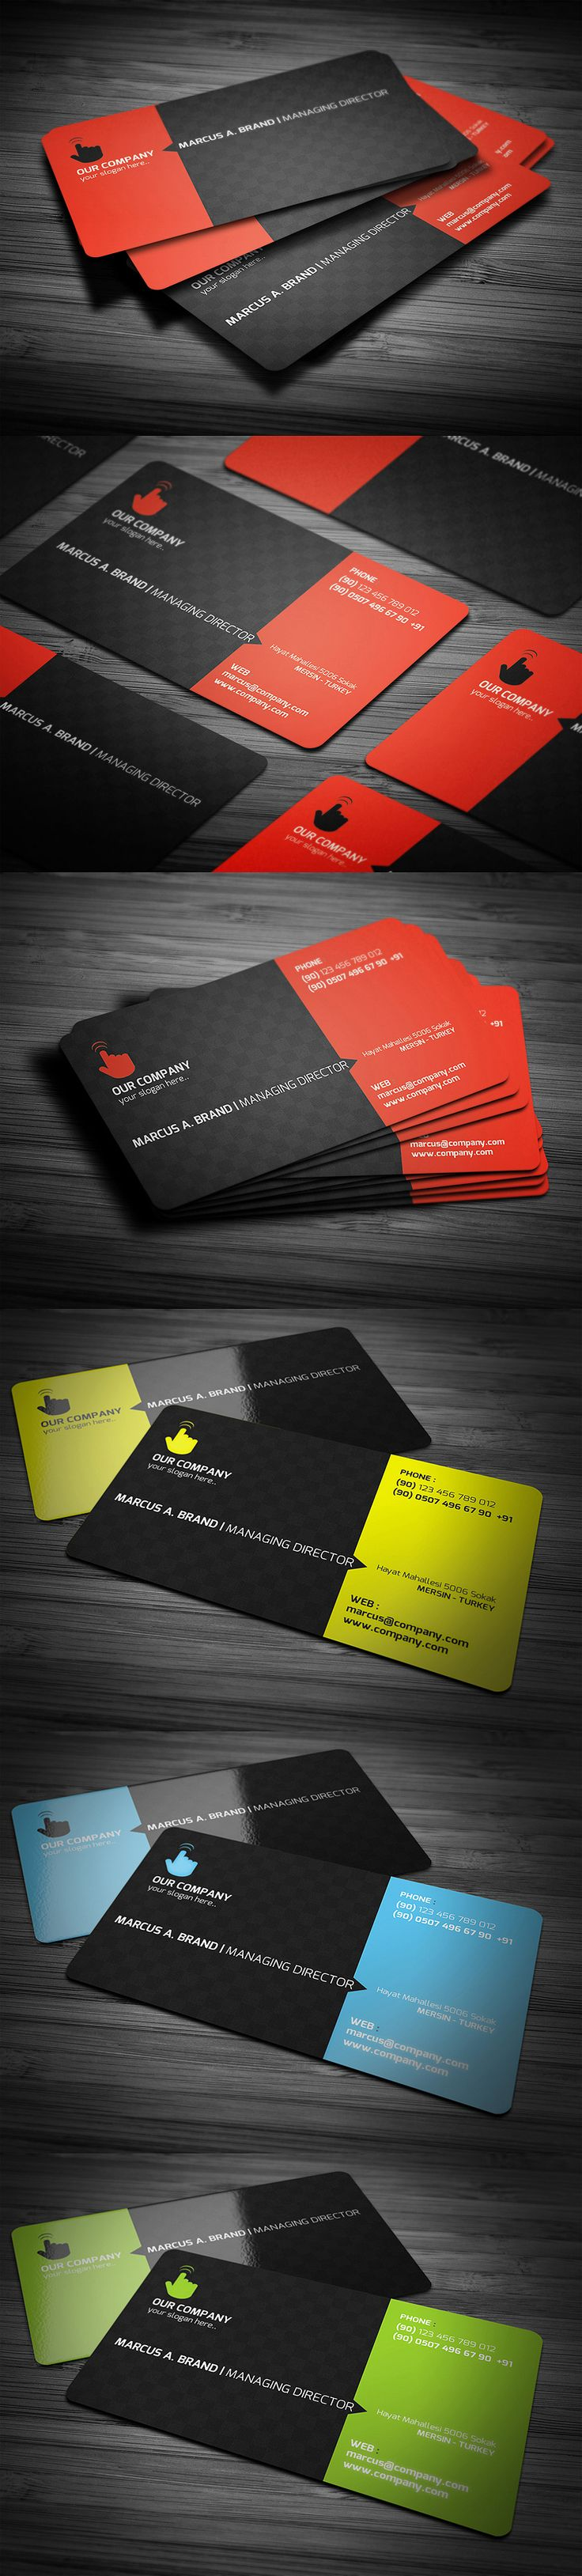 153 best Business Card Design images on Pinterest